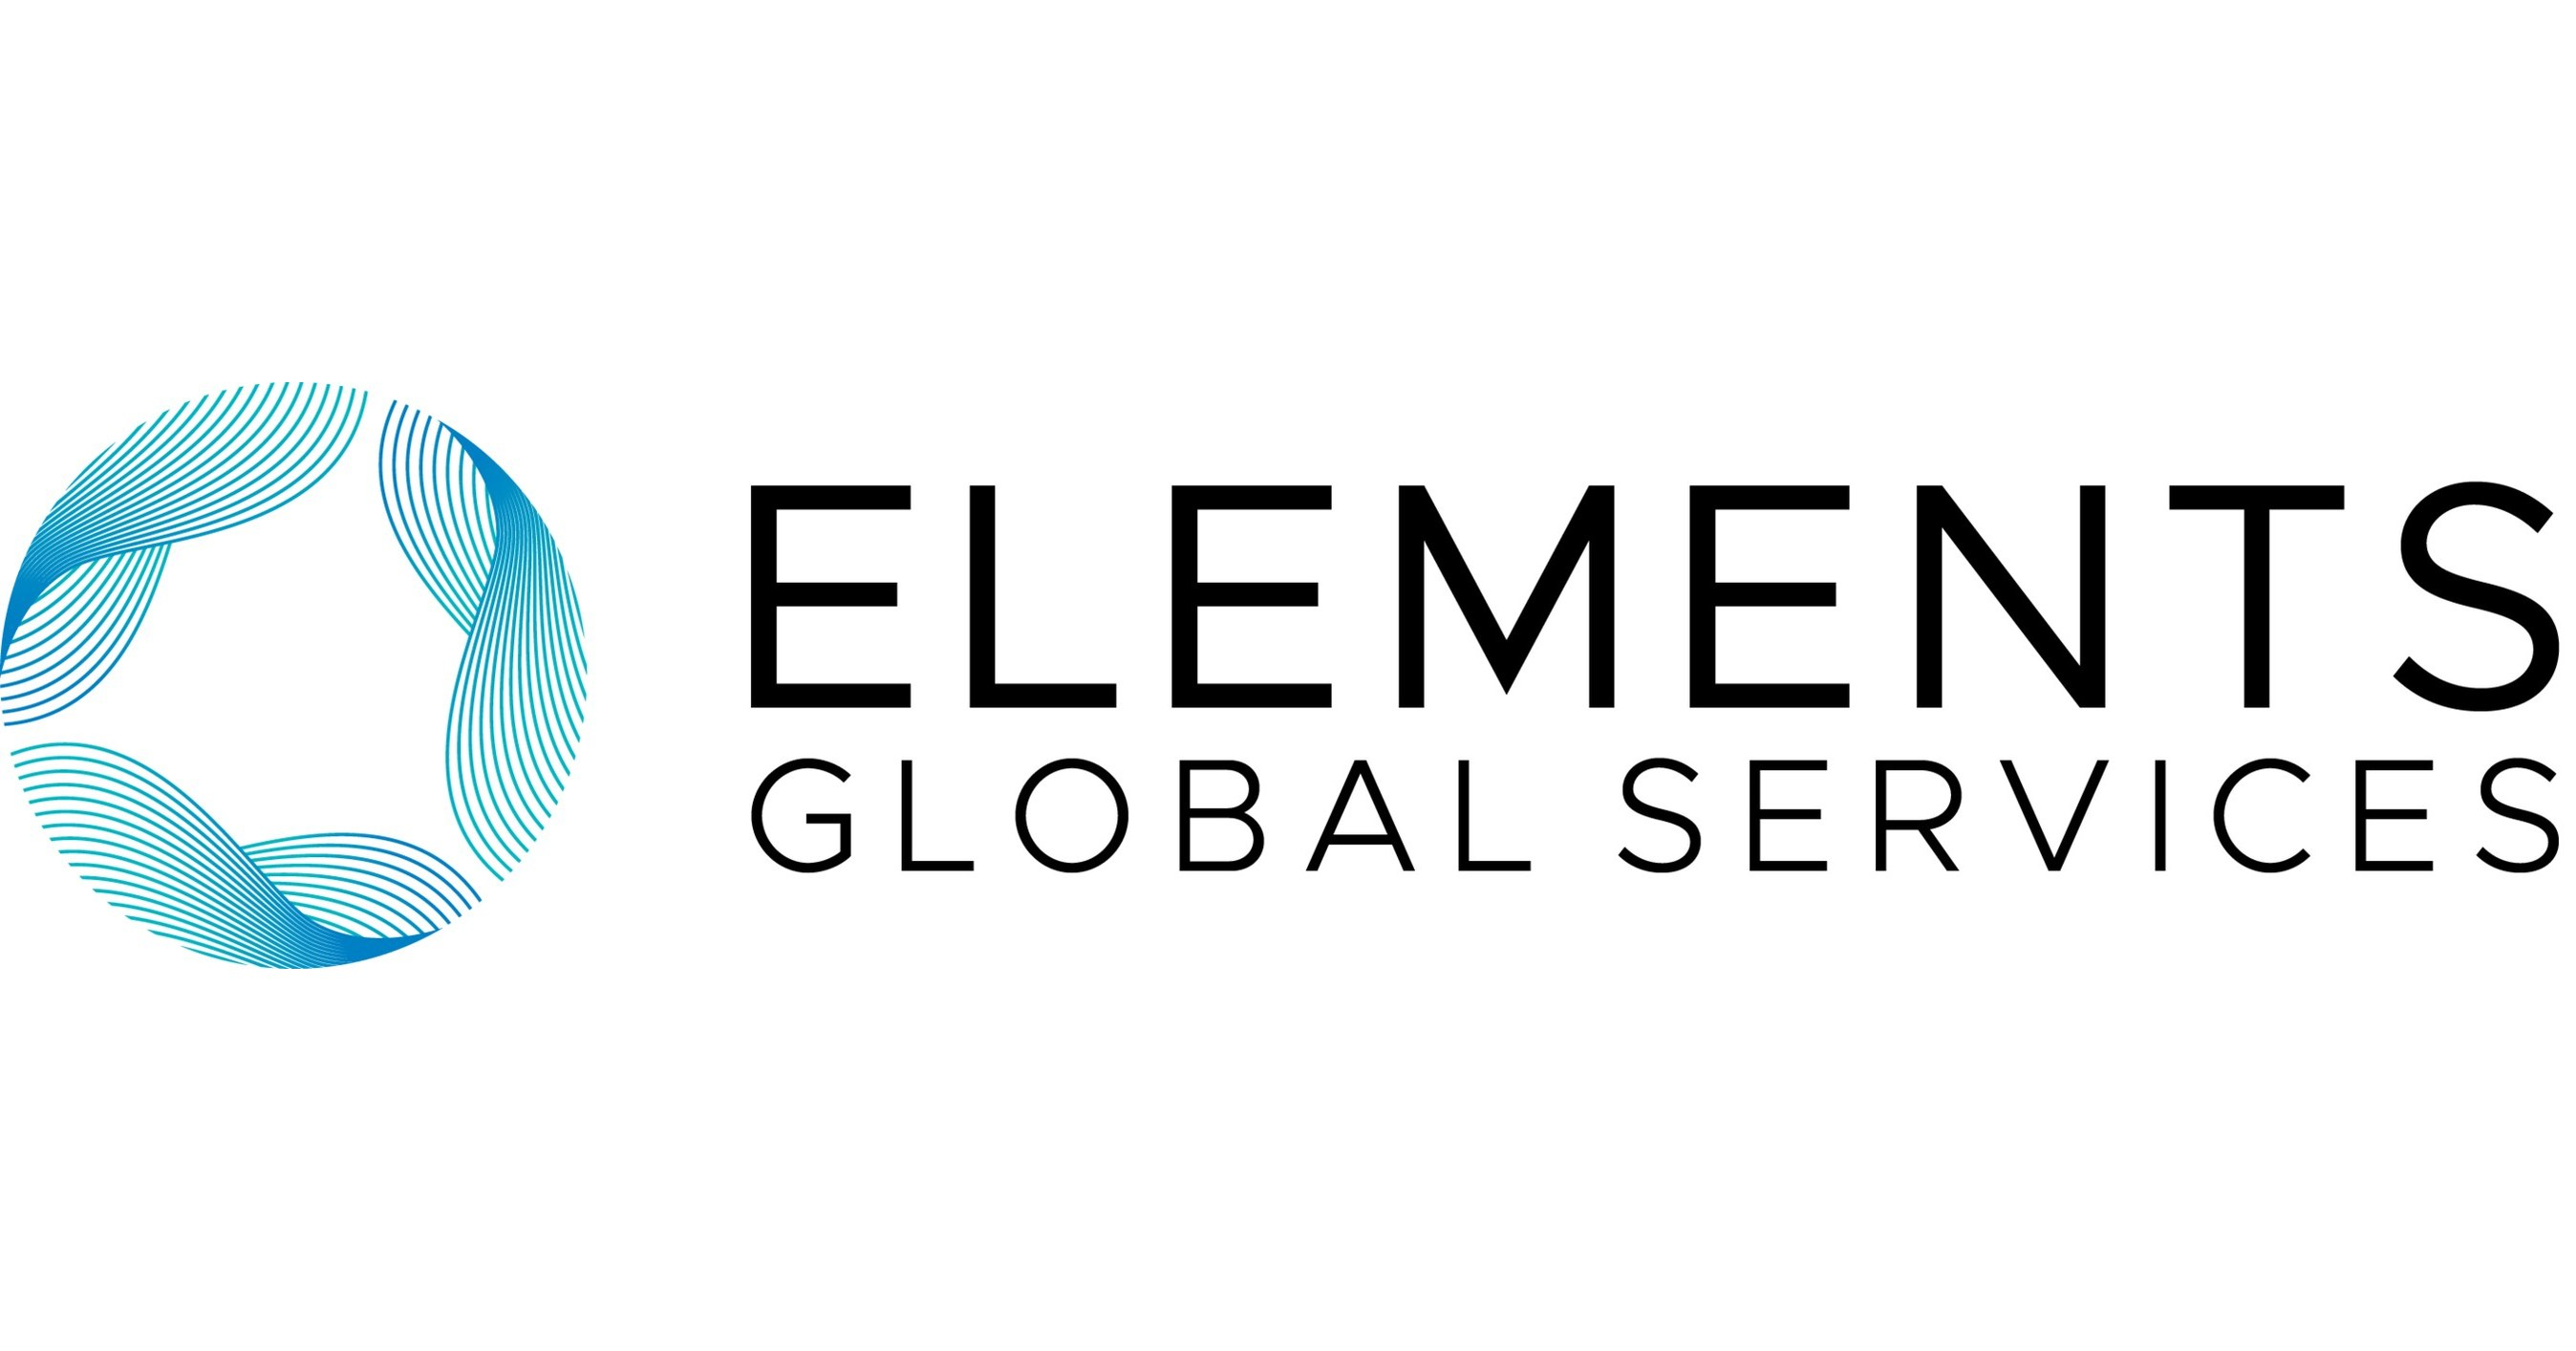 Elements Global Services Announces Opening of APAC Headquarters In Shanghai  To Support Expansion & Growth